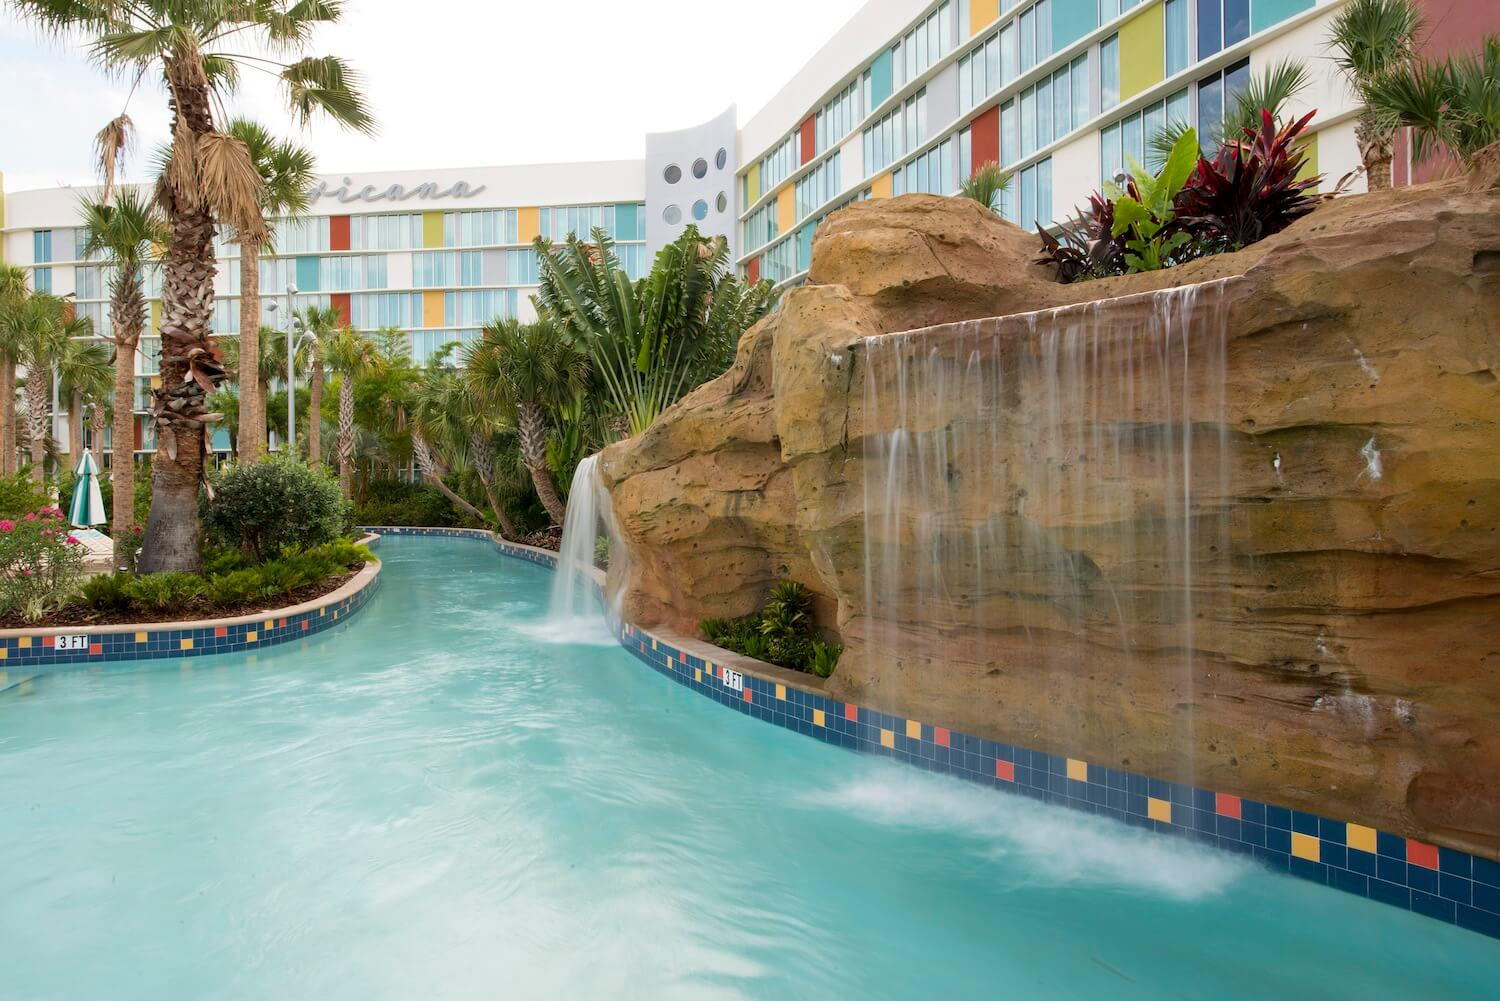 Cabana Bay Beach Resort officially opens as The Beach Boys